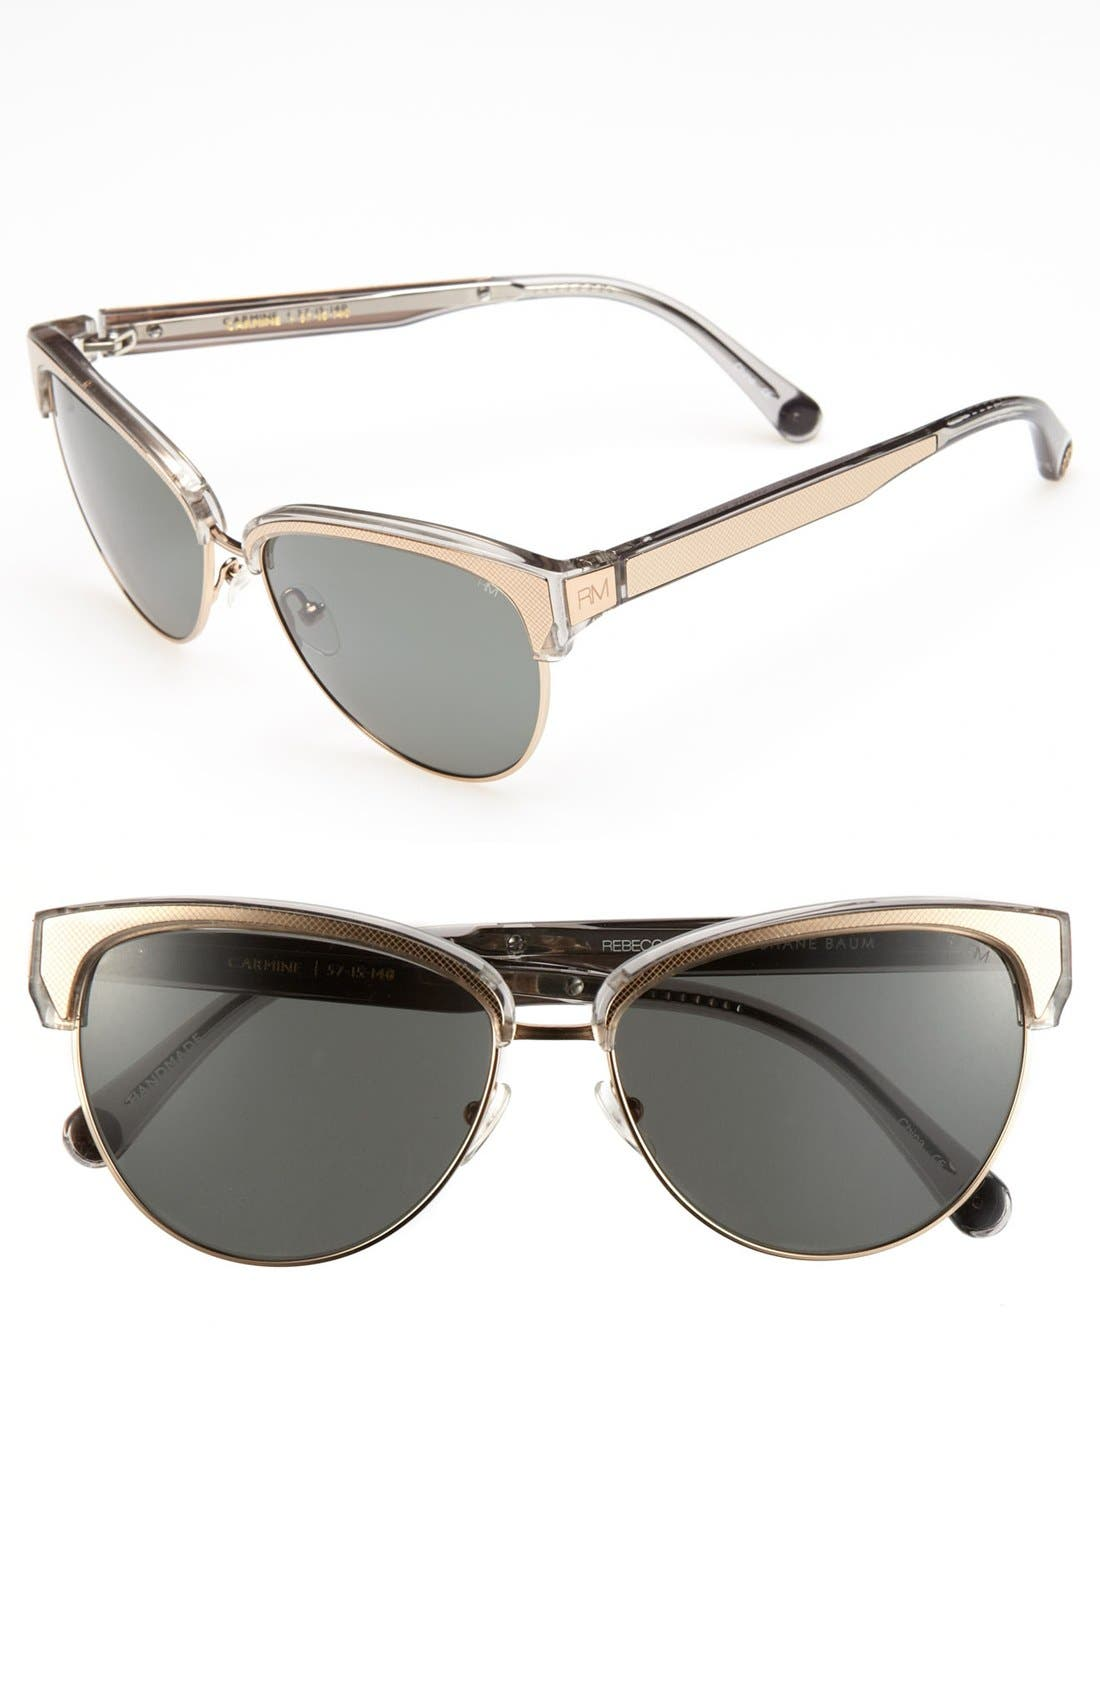 Alternate Image 1 Selected - Rebecca Minkoff 'Carmine' Sunglasses